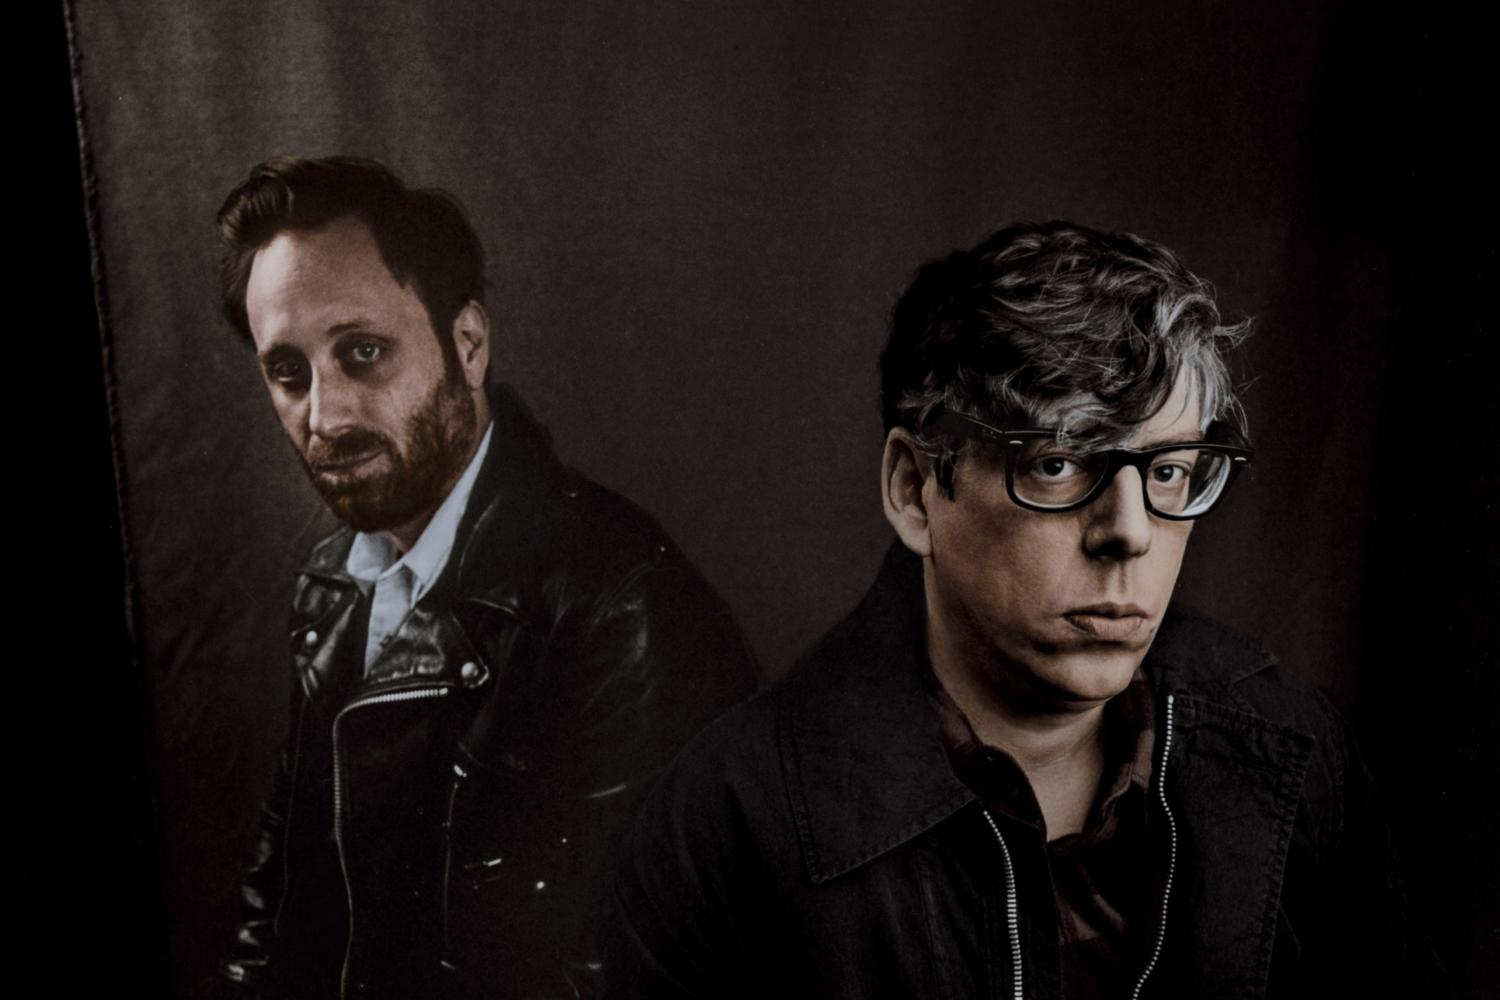 The Black Keys pull out of Woodstock's 50th anniversary event